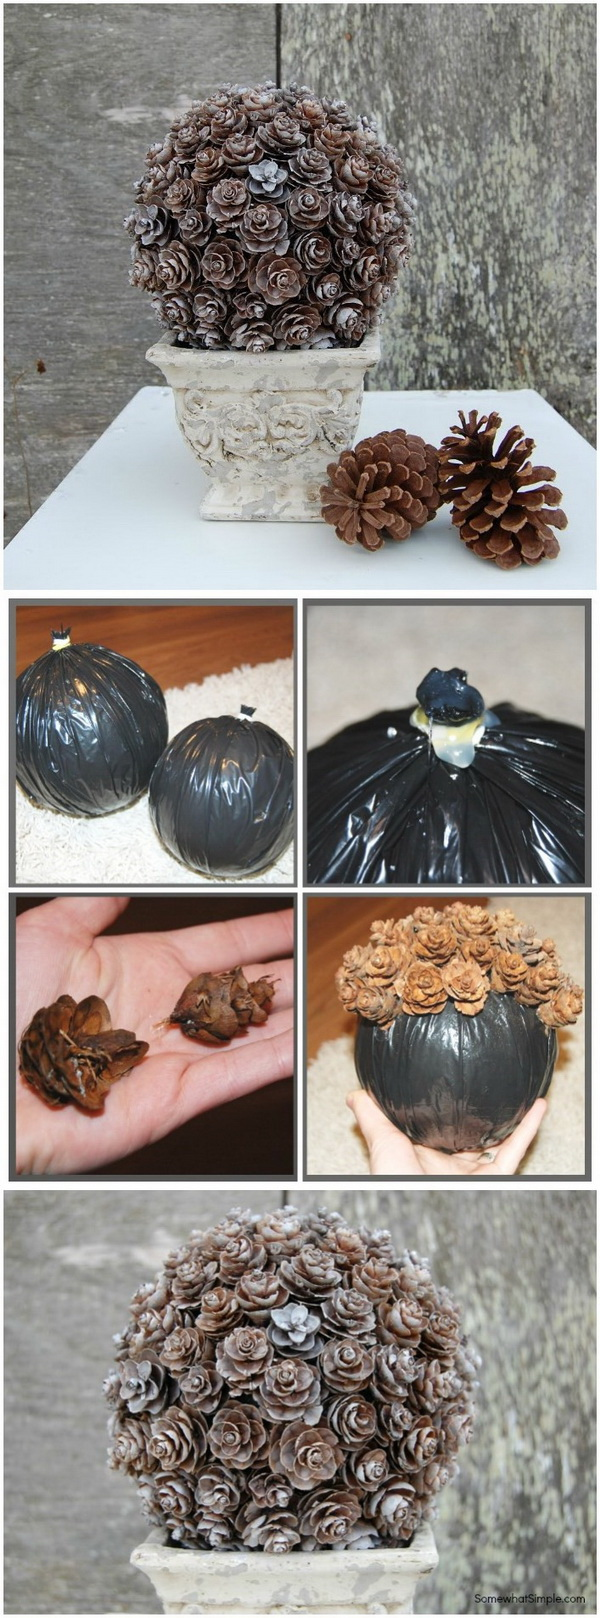 Pine Cone Topiary. Make this beautifully arranged pine cone topiary to dress up your porch or home for fall.